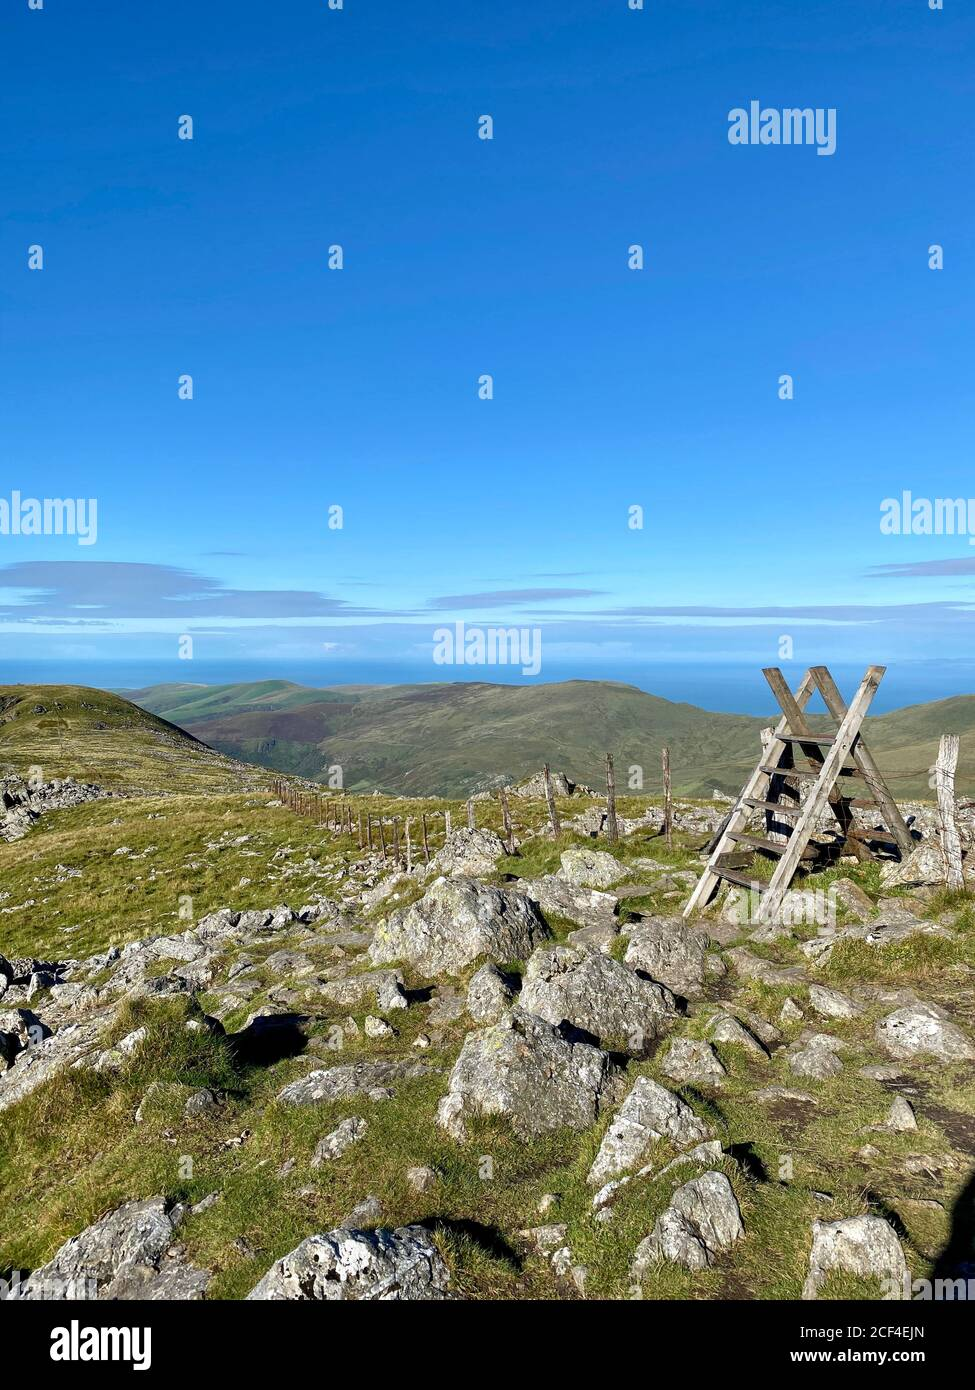 Cadair Idris mountain in North Wales, part of Snowdonia National Park and close to the Mach Loop Stock Photo